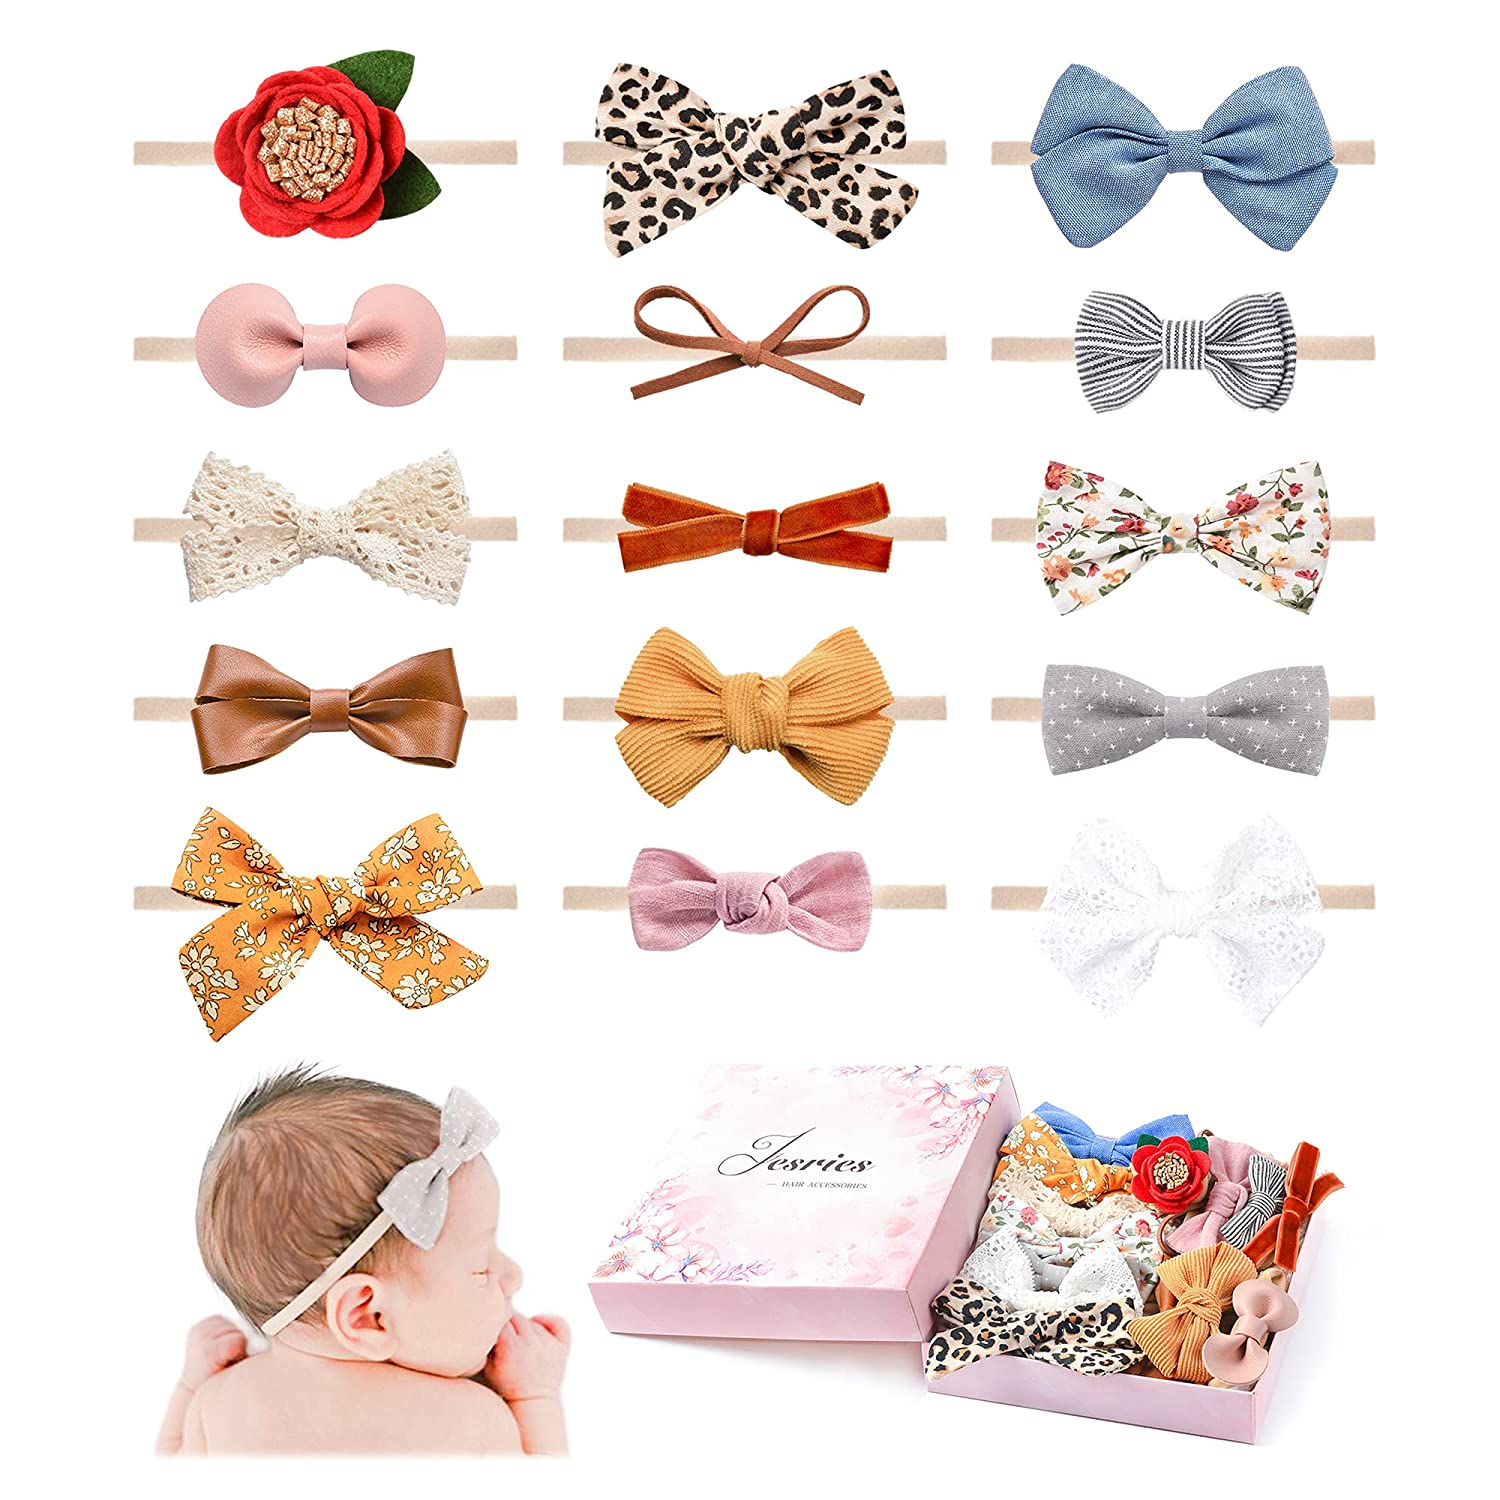 15 PCS Baby Girls Headbands and Bows Hairbands Soft Nylon Elastics Handmade Hair Accessories for Newborn Babies Infant Toddlers Kids